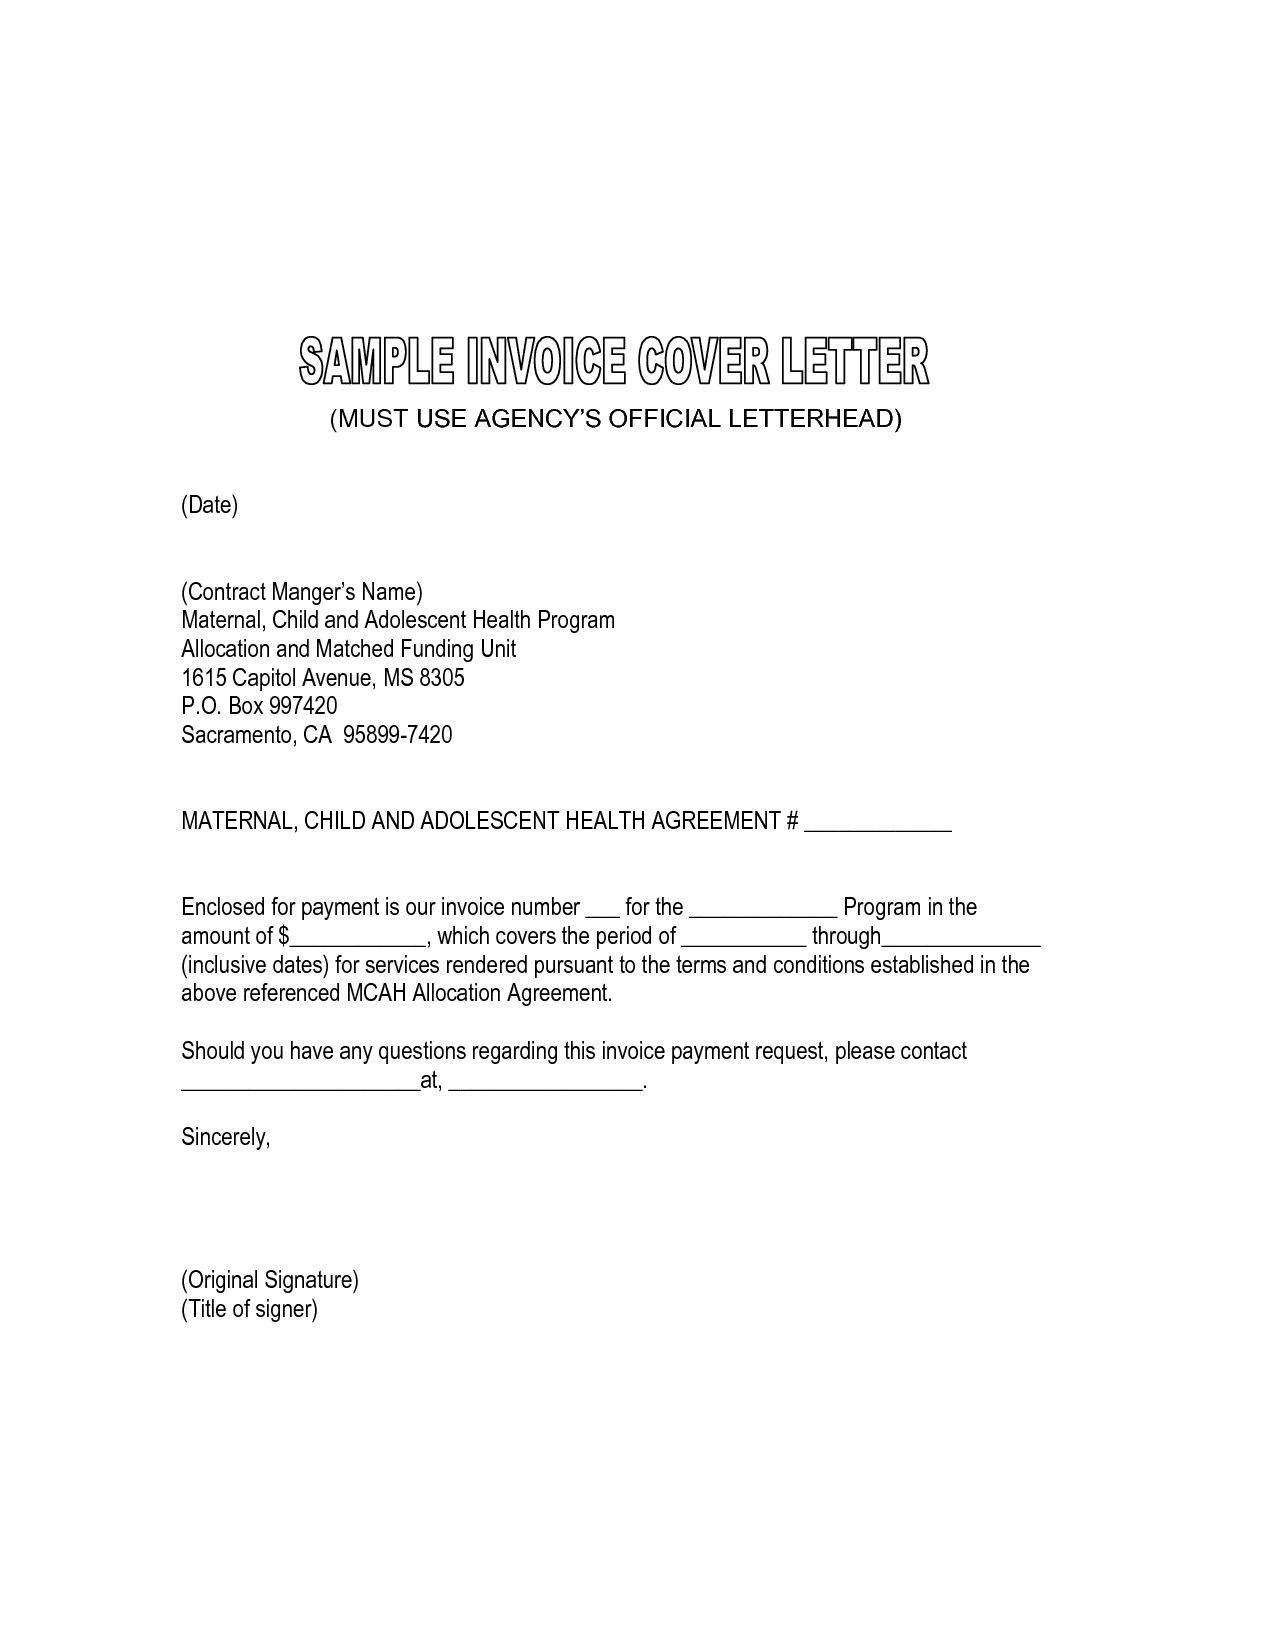 sample invoice letters wpawpartco please find enclosed invoice letter sample